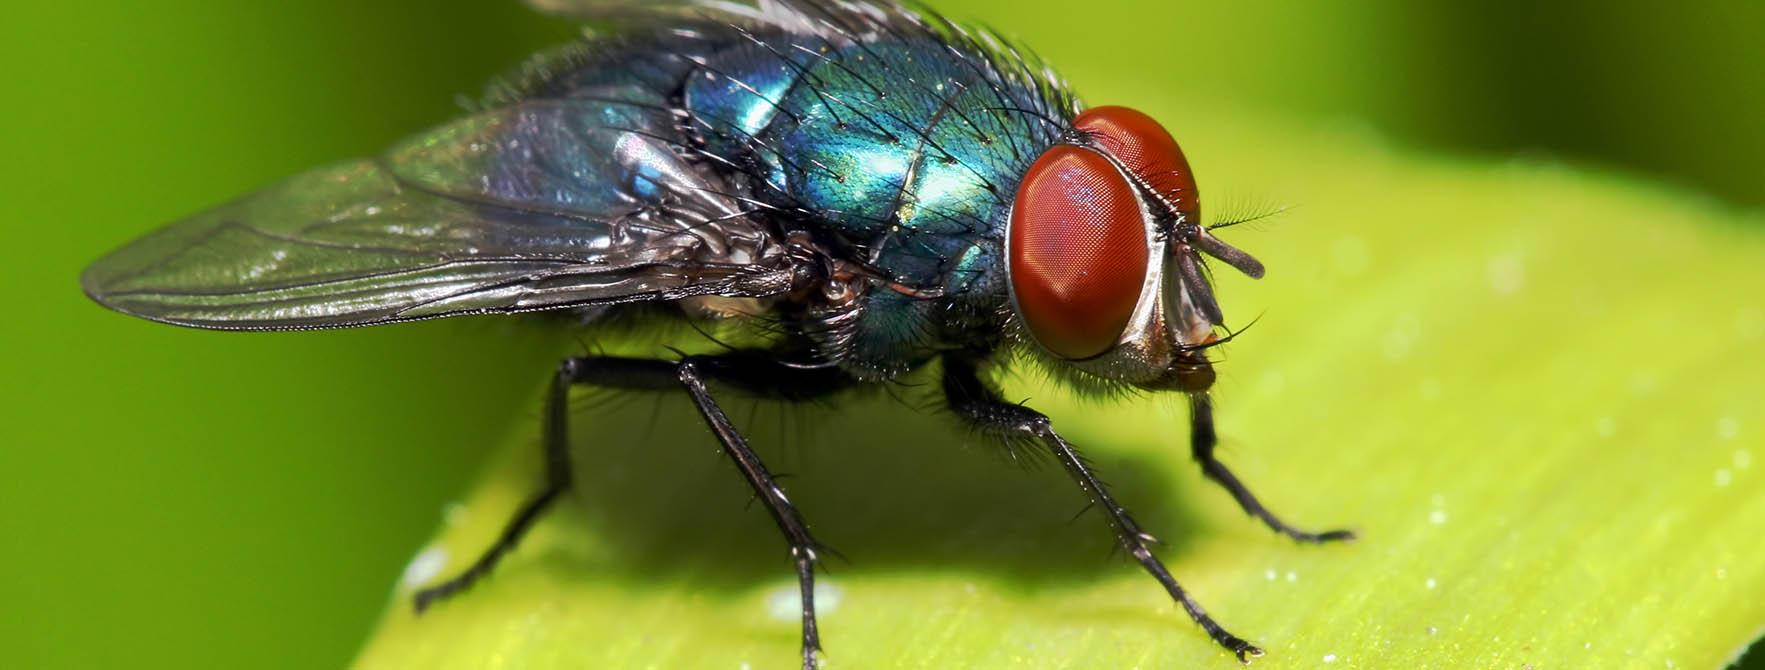 All About Flies Natural Fly Control